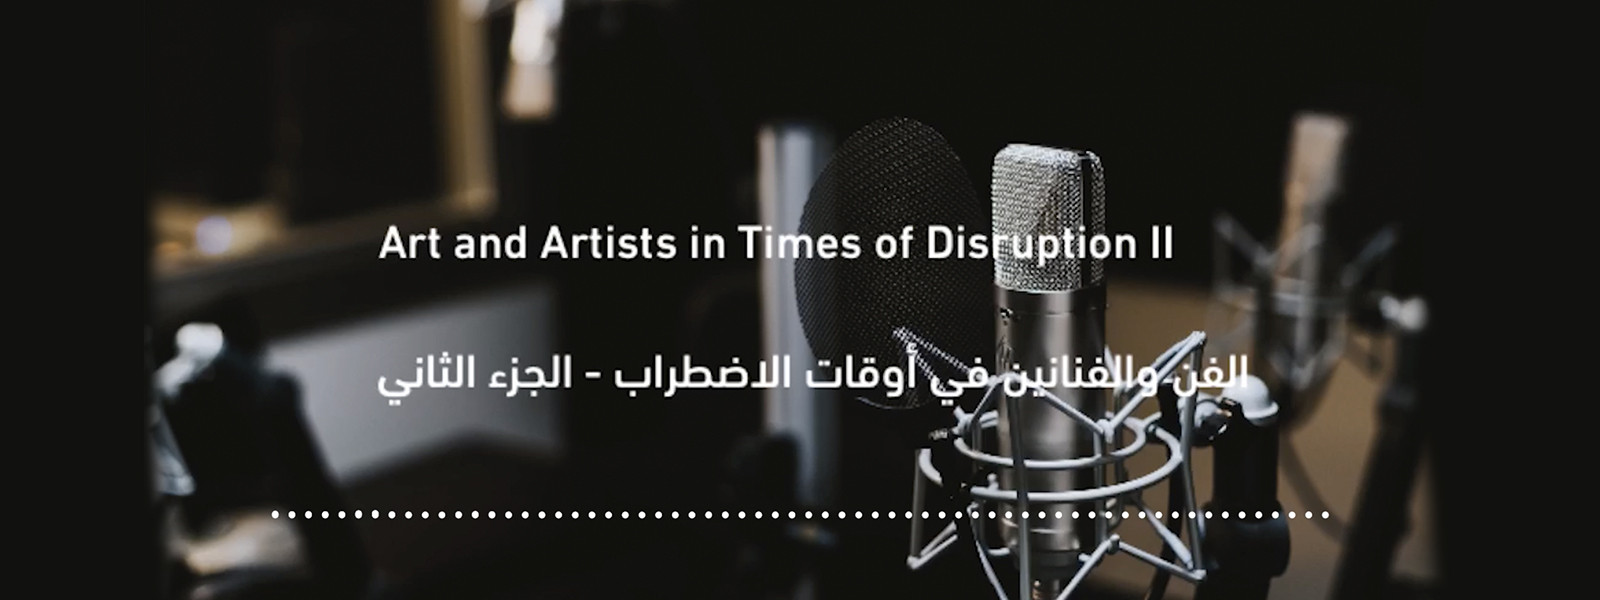 Conversations - Art and Artists in Times of Disruption II